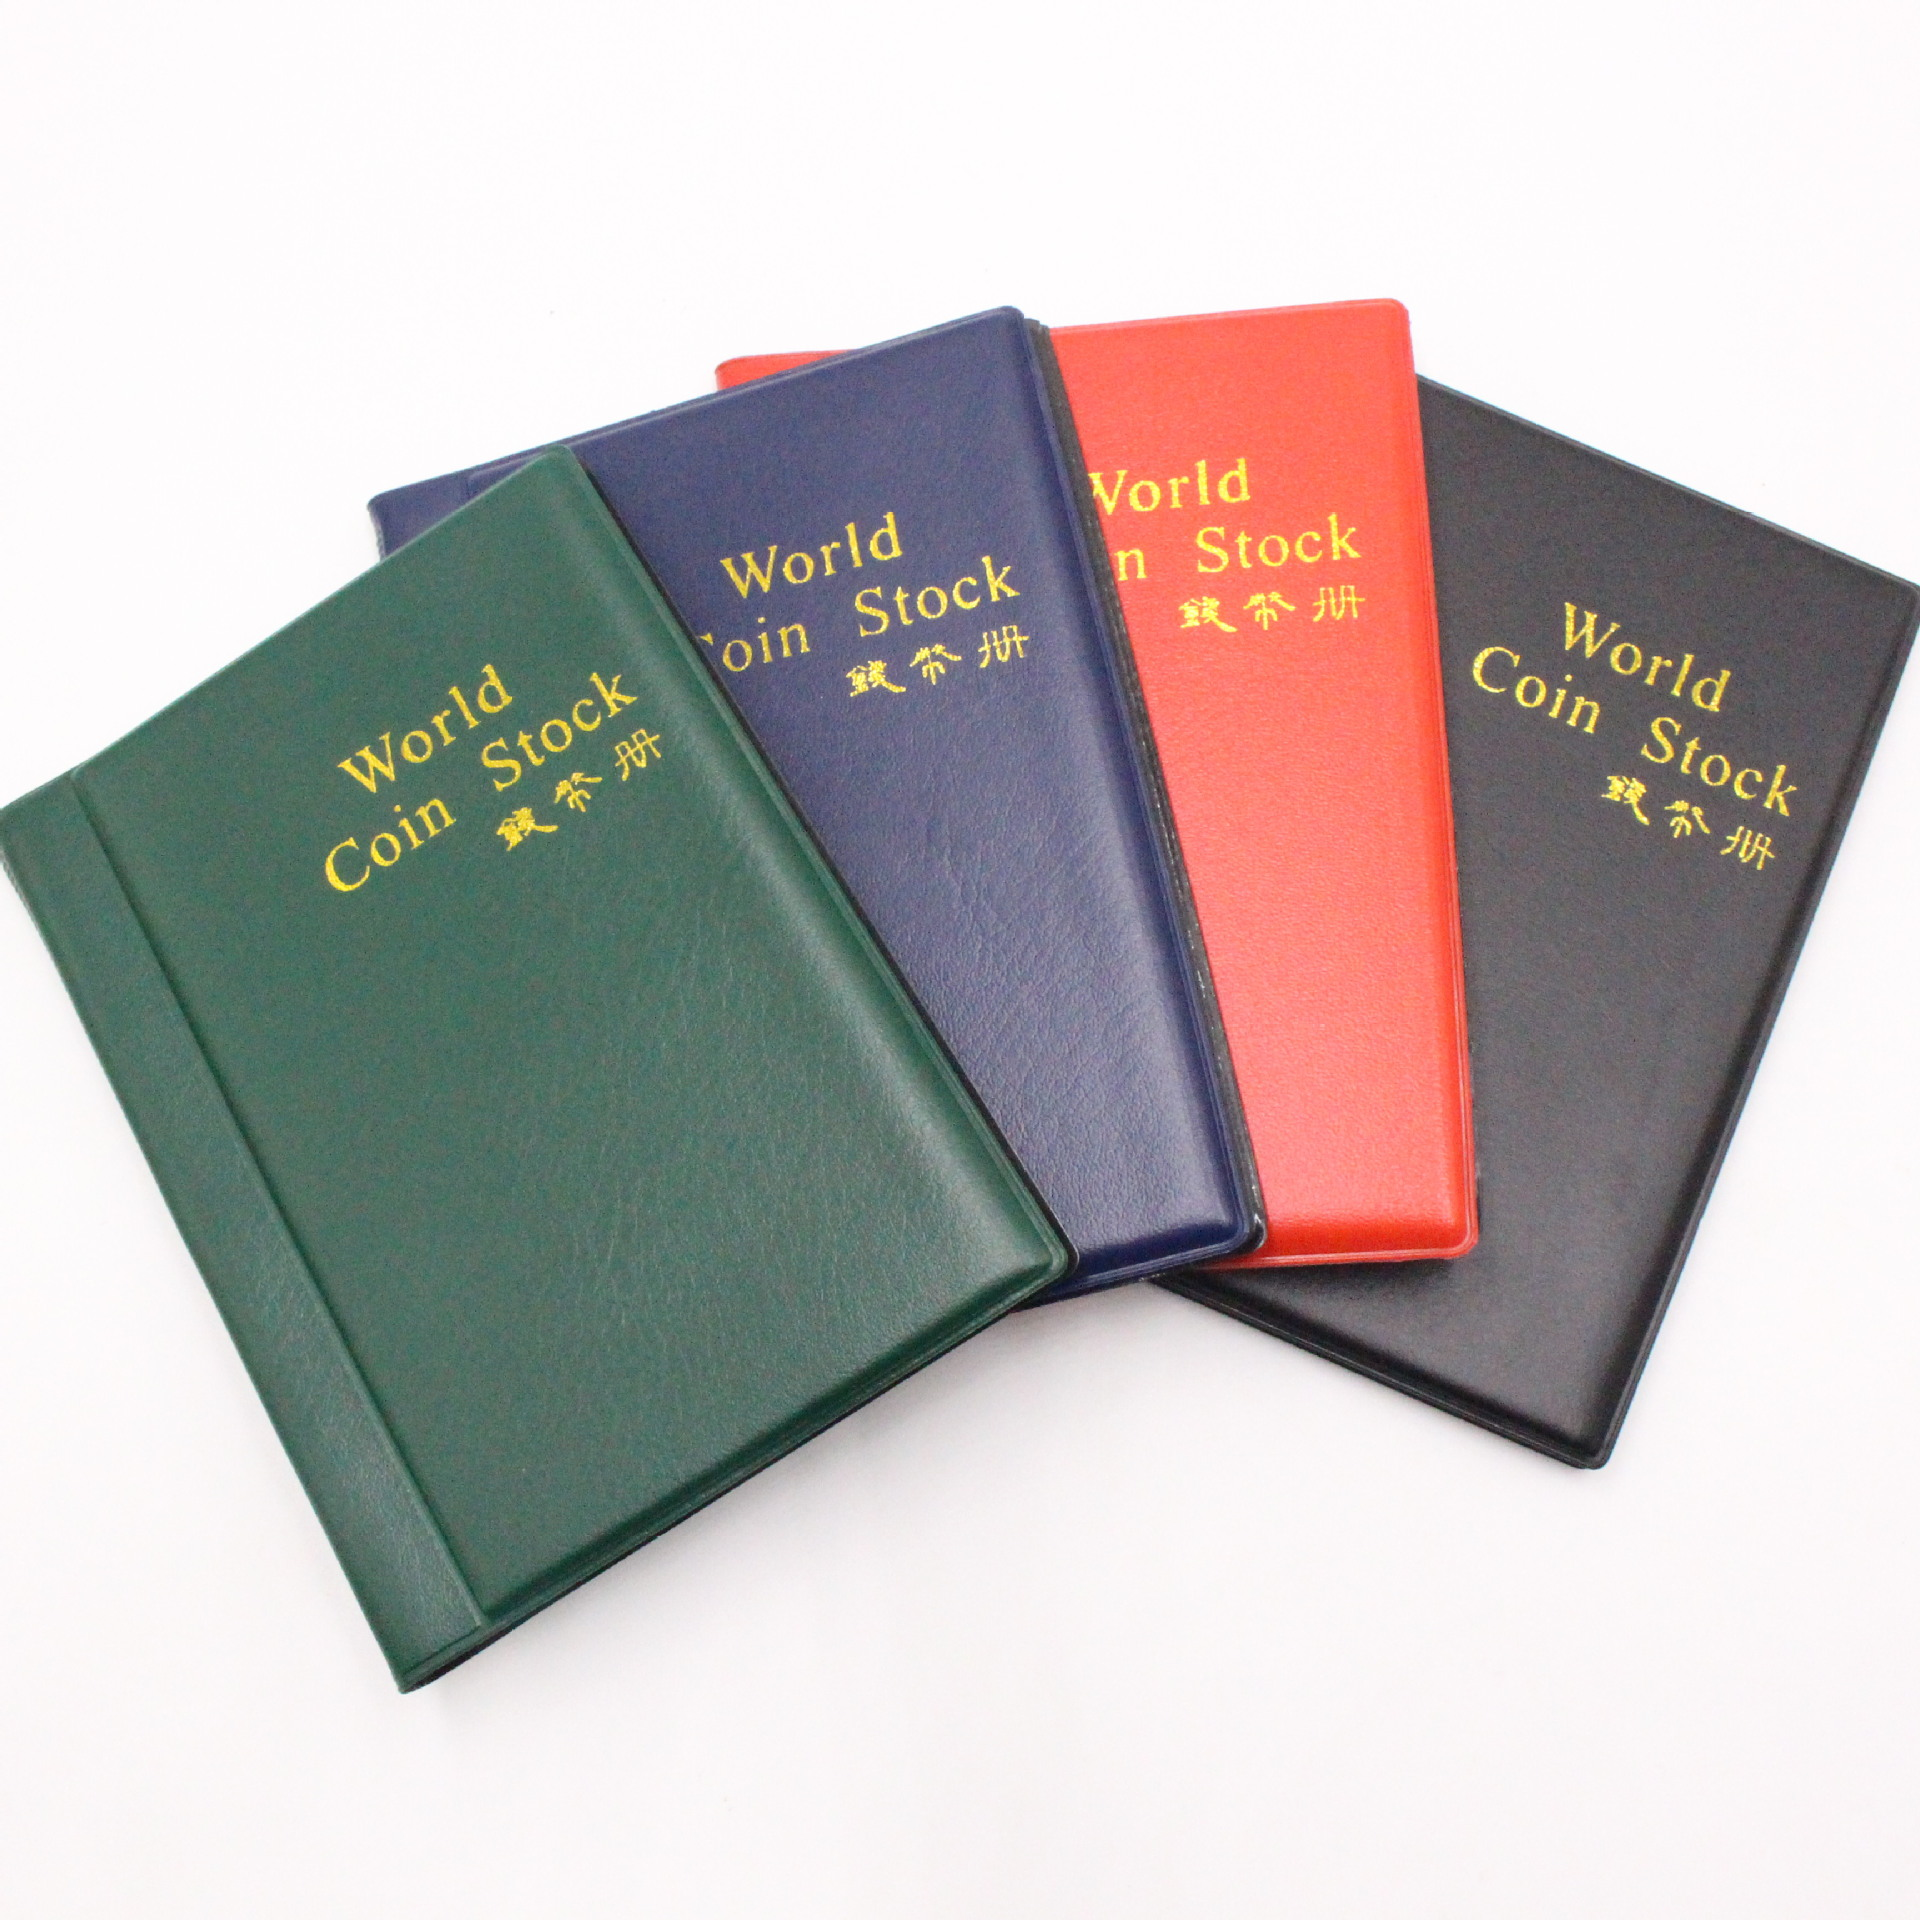 150 Pockets Coin Album Holders 10 Pages for Coins Collection Quality!